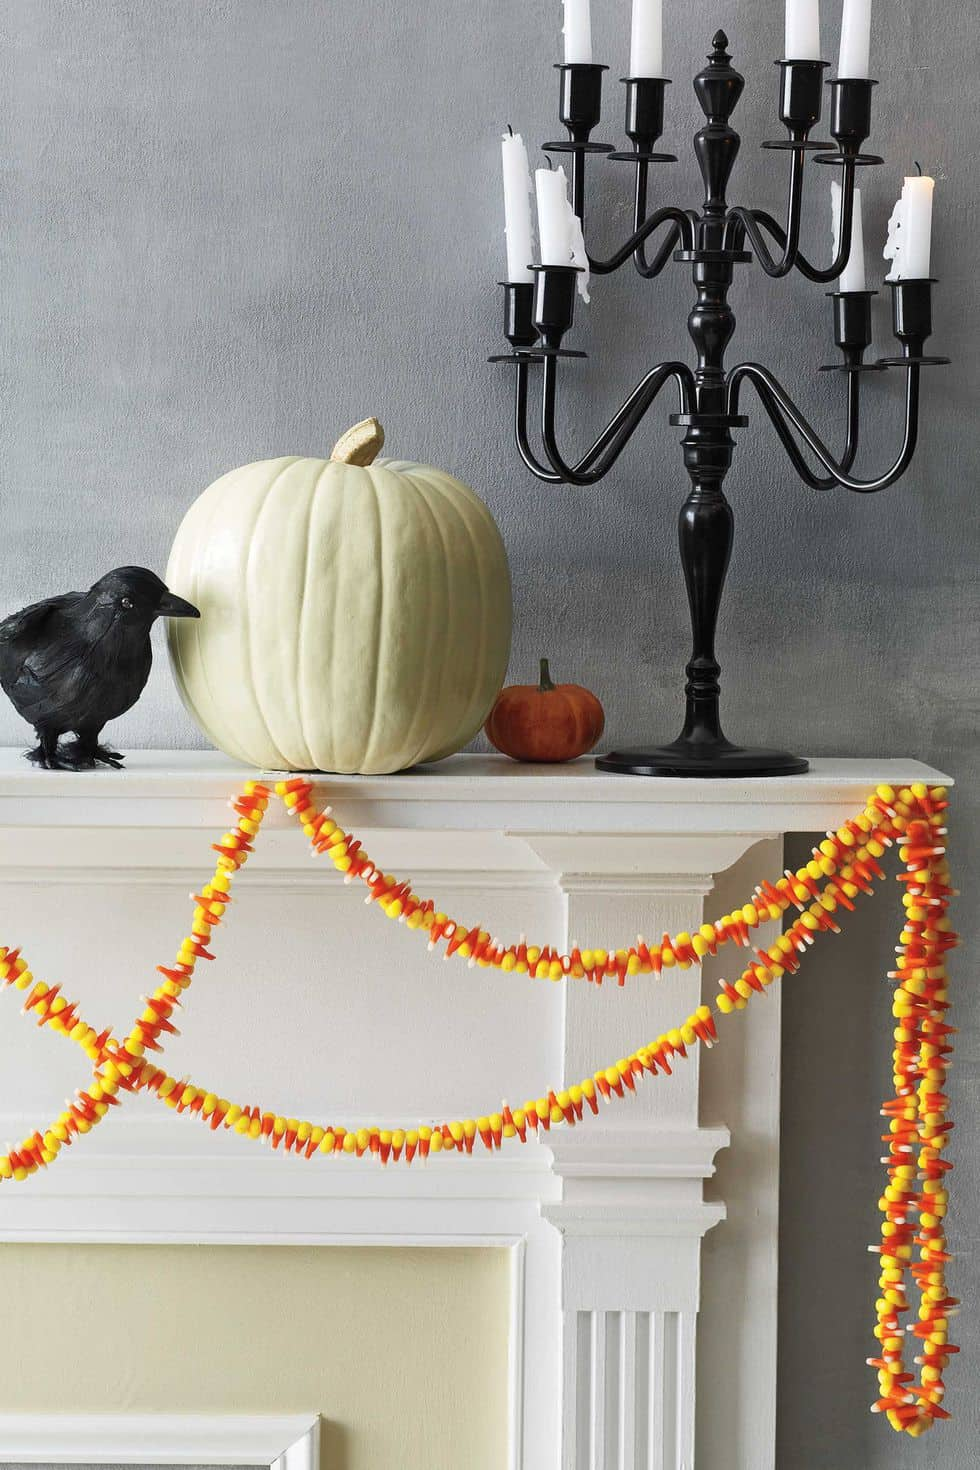 Candy corn garland strewn on a white mantel that is decorated with a black crow, white pumpkin, mini orange pumpkin, and candelabra